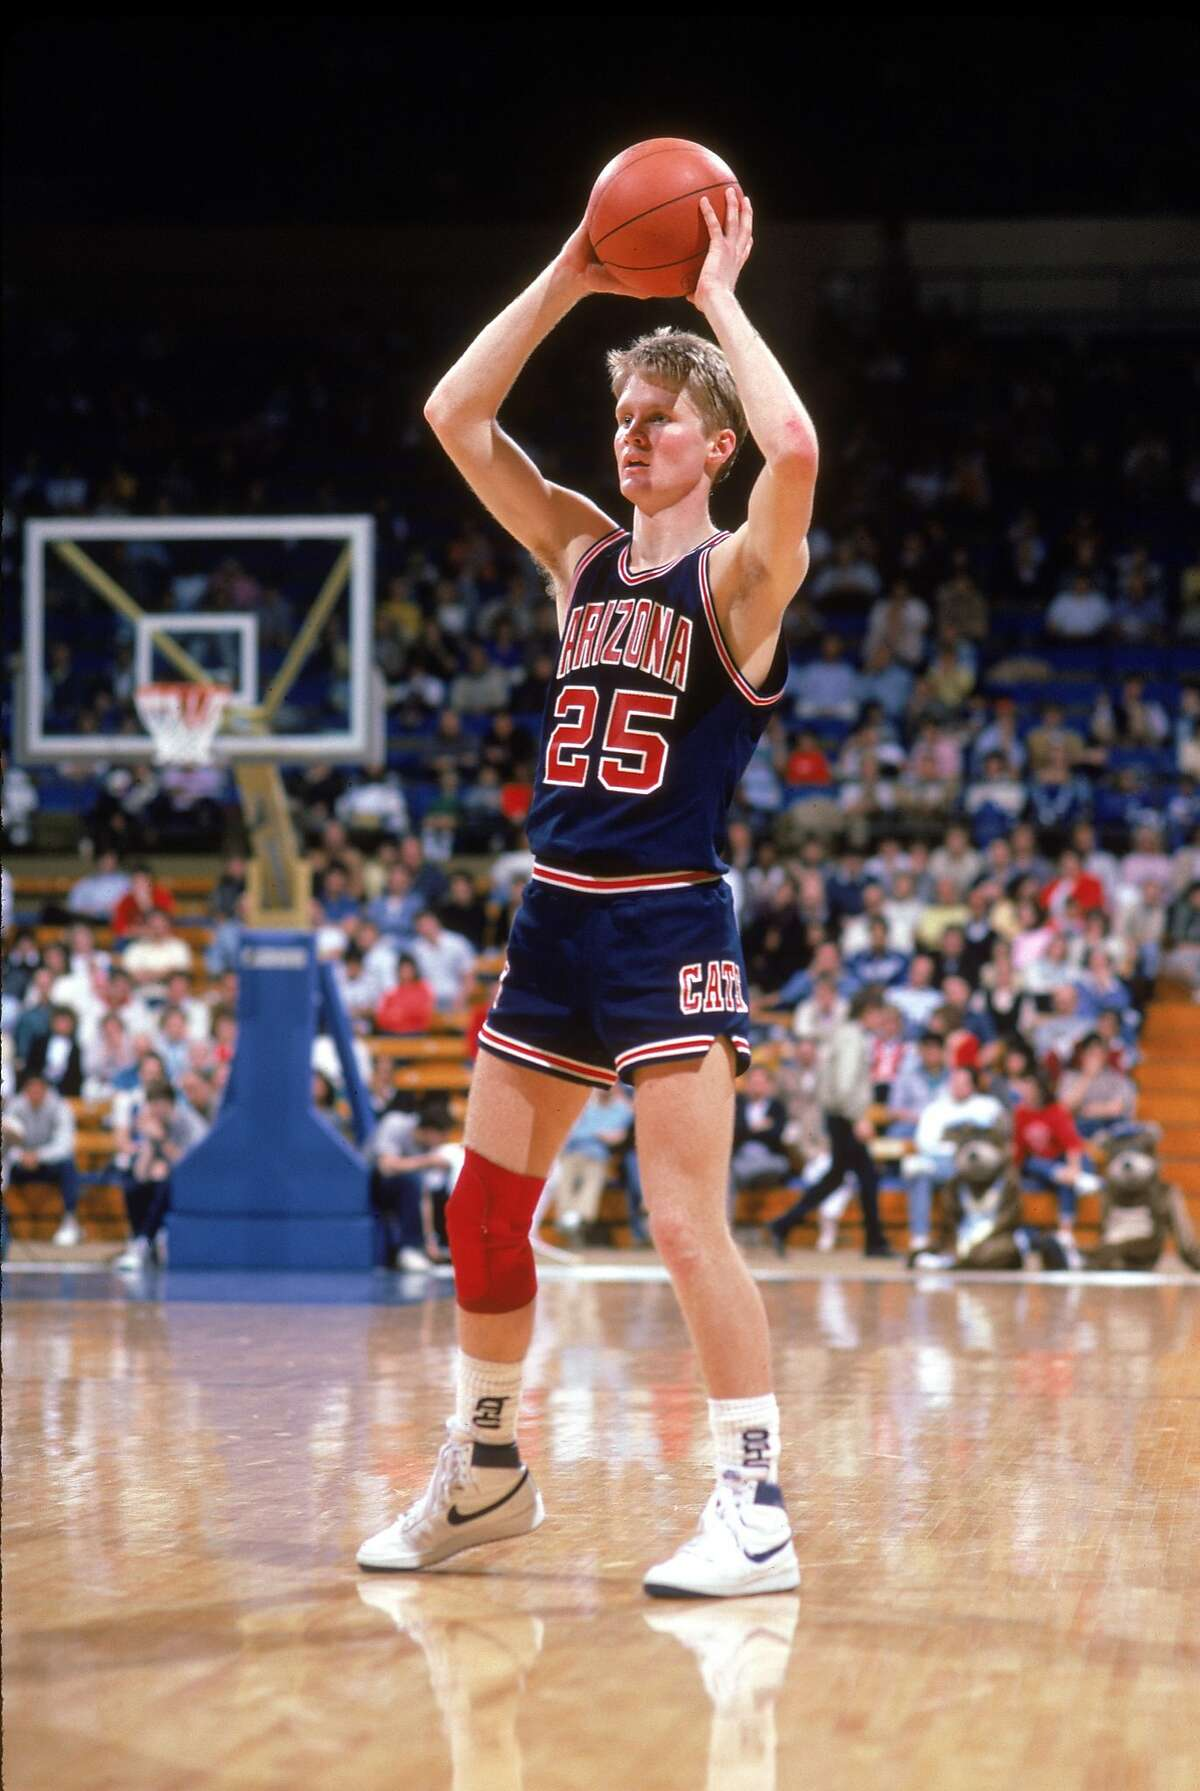 TUCSON, ARIZONA - 1991-1996: Steve Kerr #25 of the University of Arizona Wildcats looks to pass during a season game in Tucson, Arizona . (Photo by: Bernstein Associates/Getty Images)